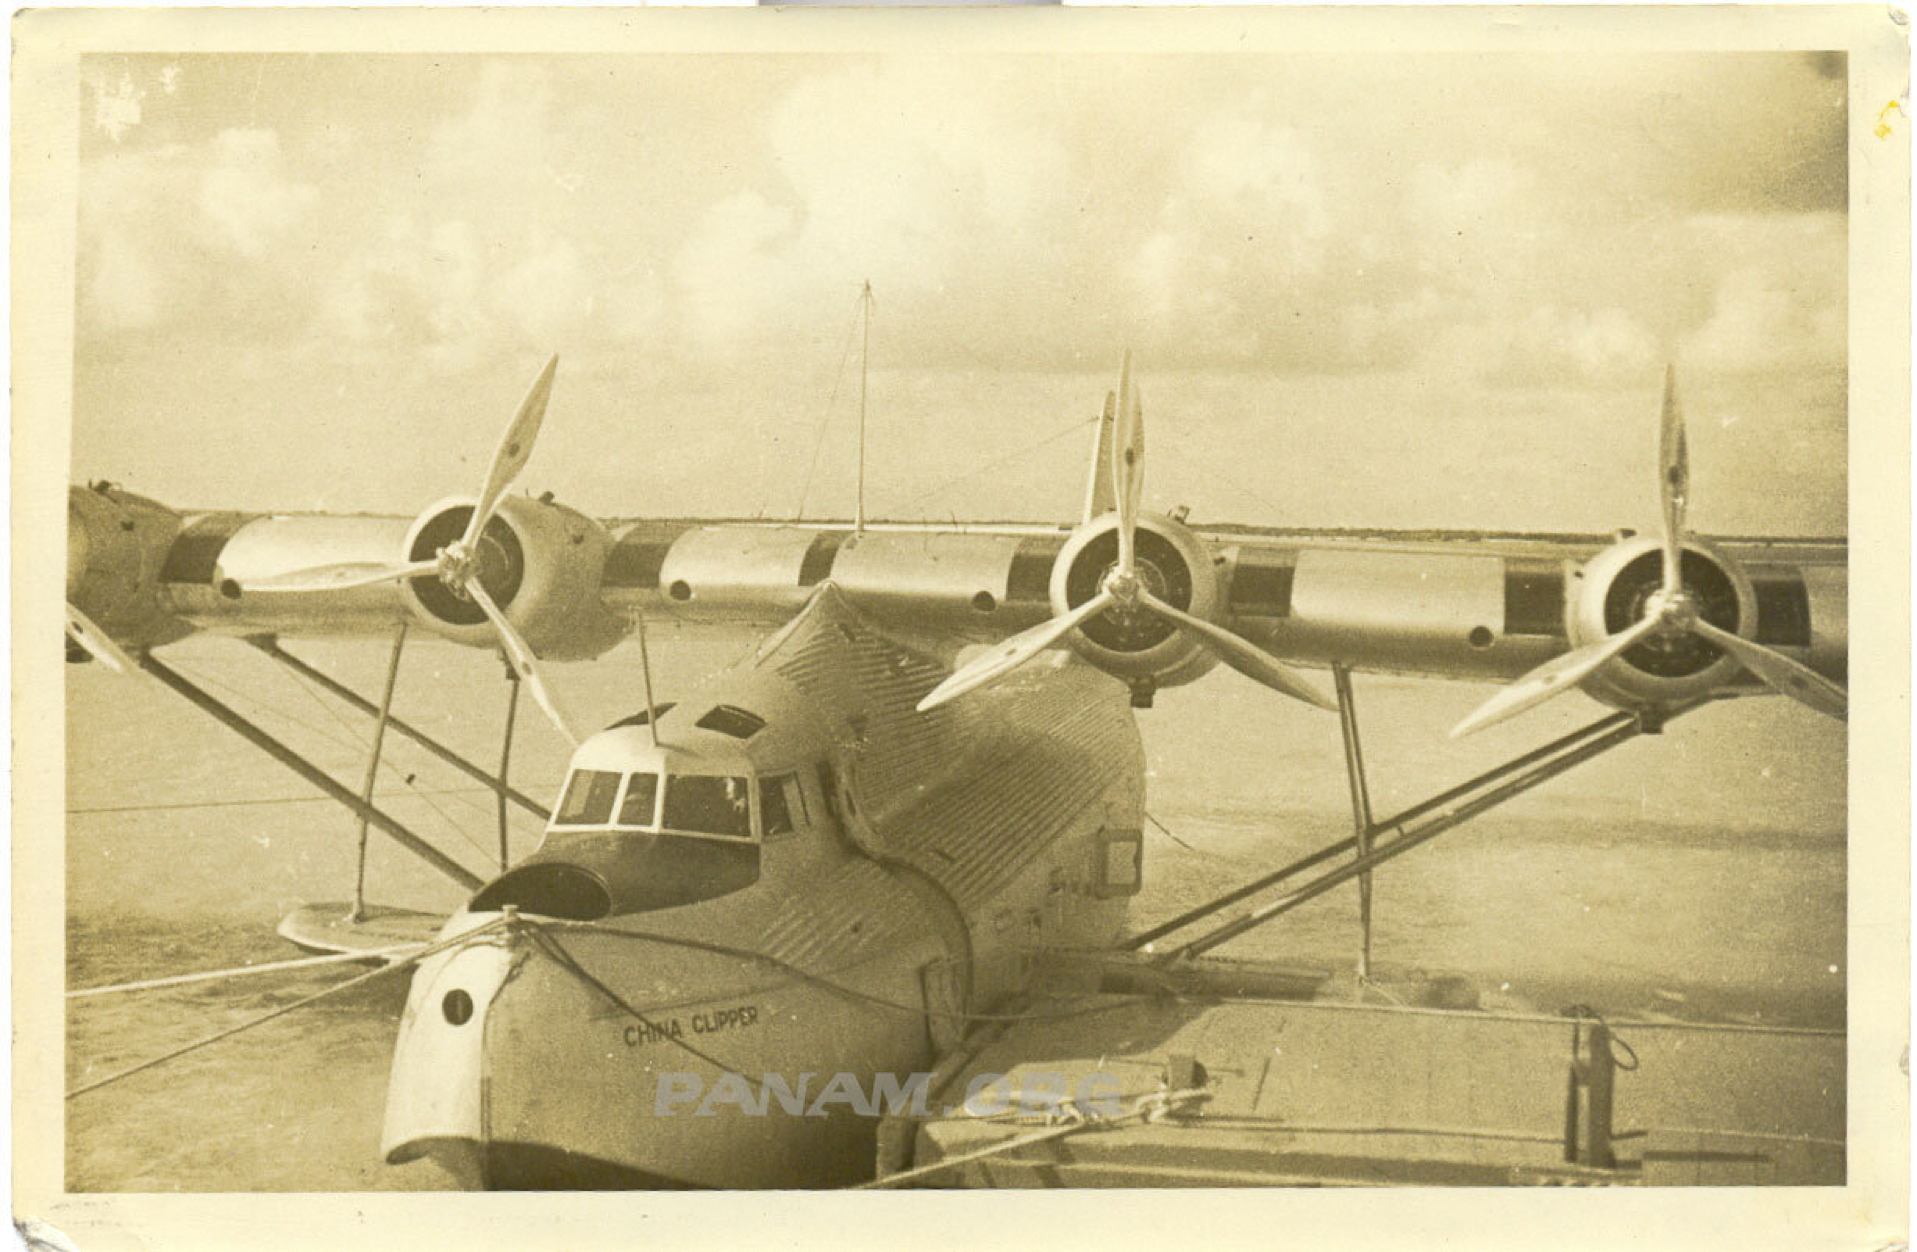 Pan Am M-130 China Clipper at Wake 1936 William Voortmeyer/PAHF Collection